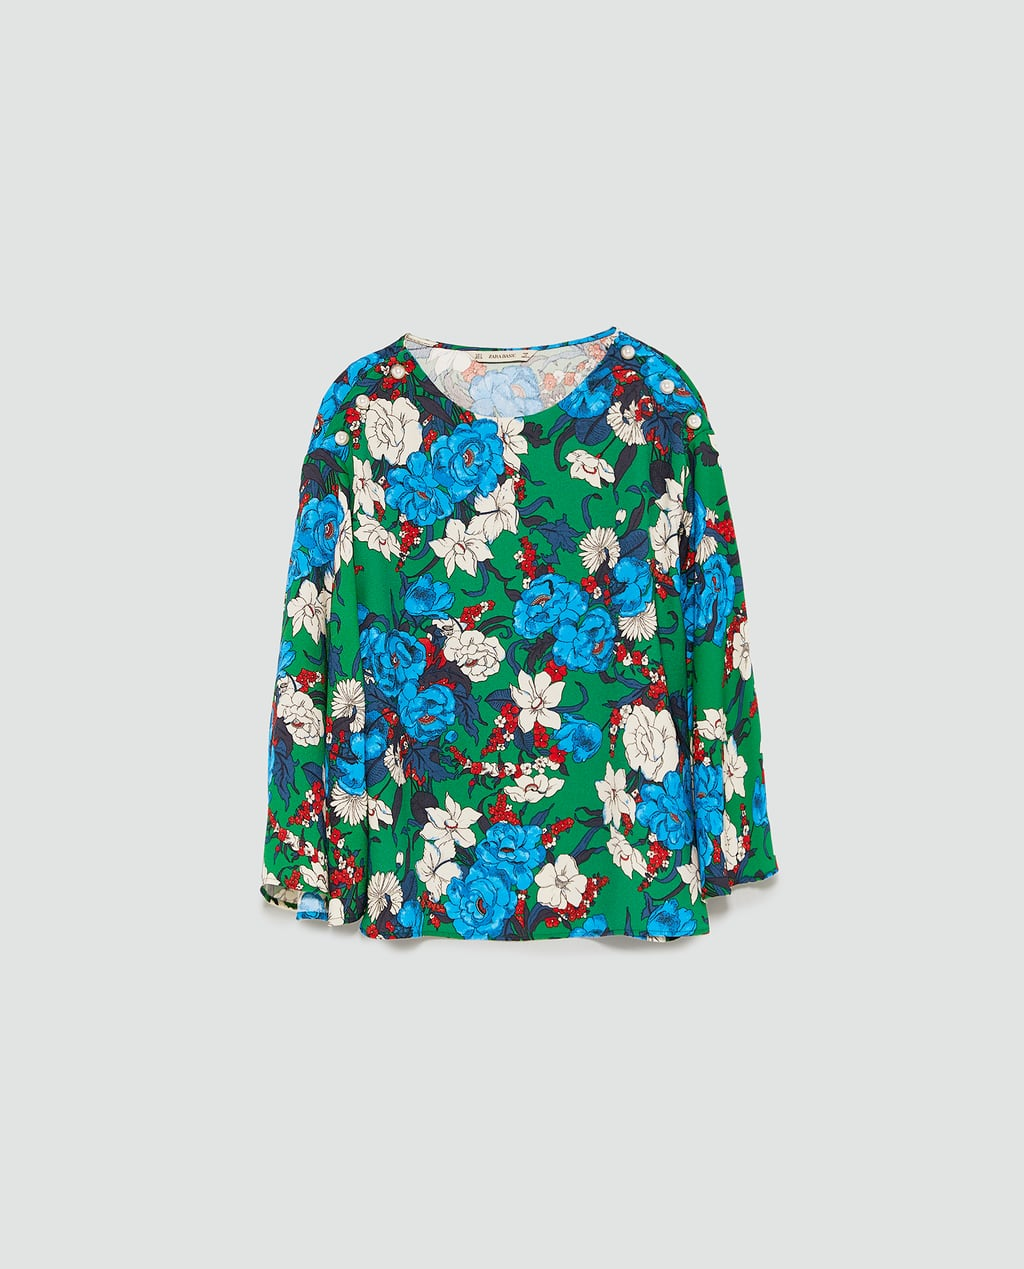 - PRINTED TOP WITH PEARL BEADS